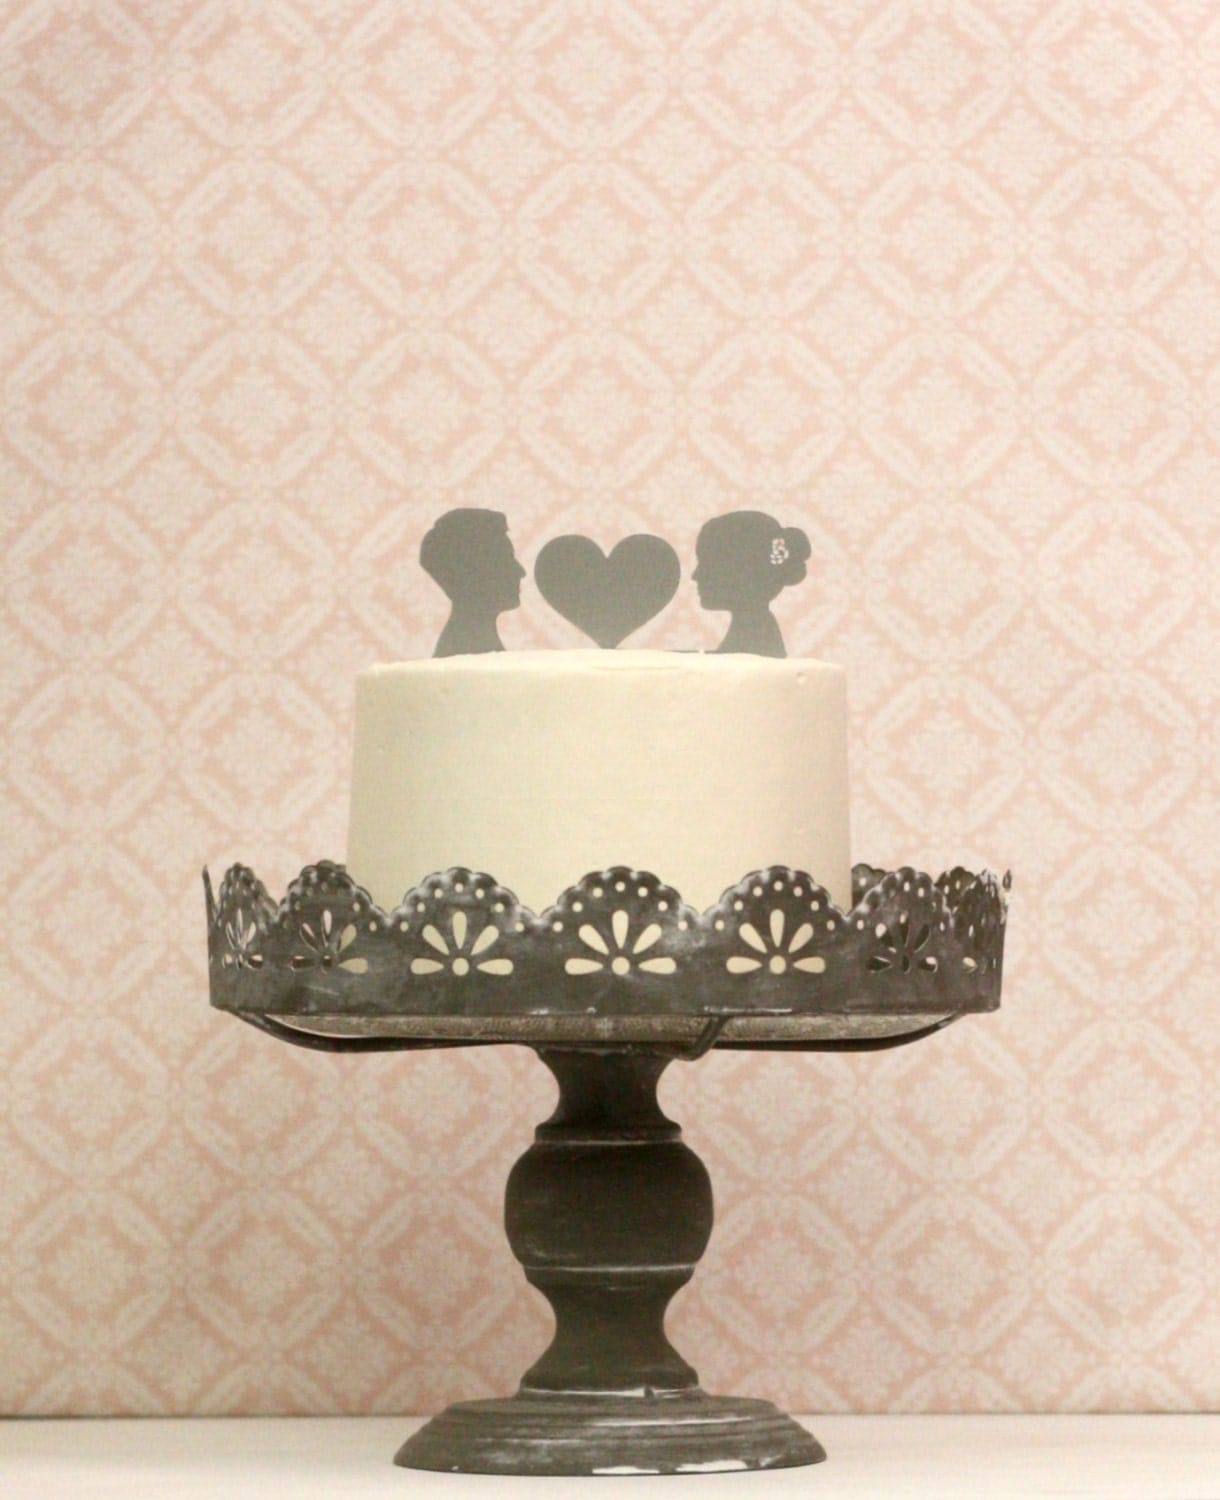 Custom Silhouette Wedding Cake Topper Personalized with